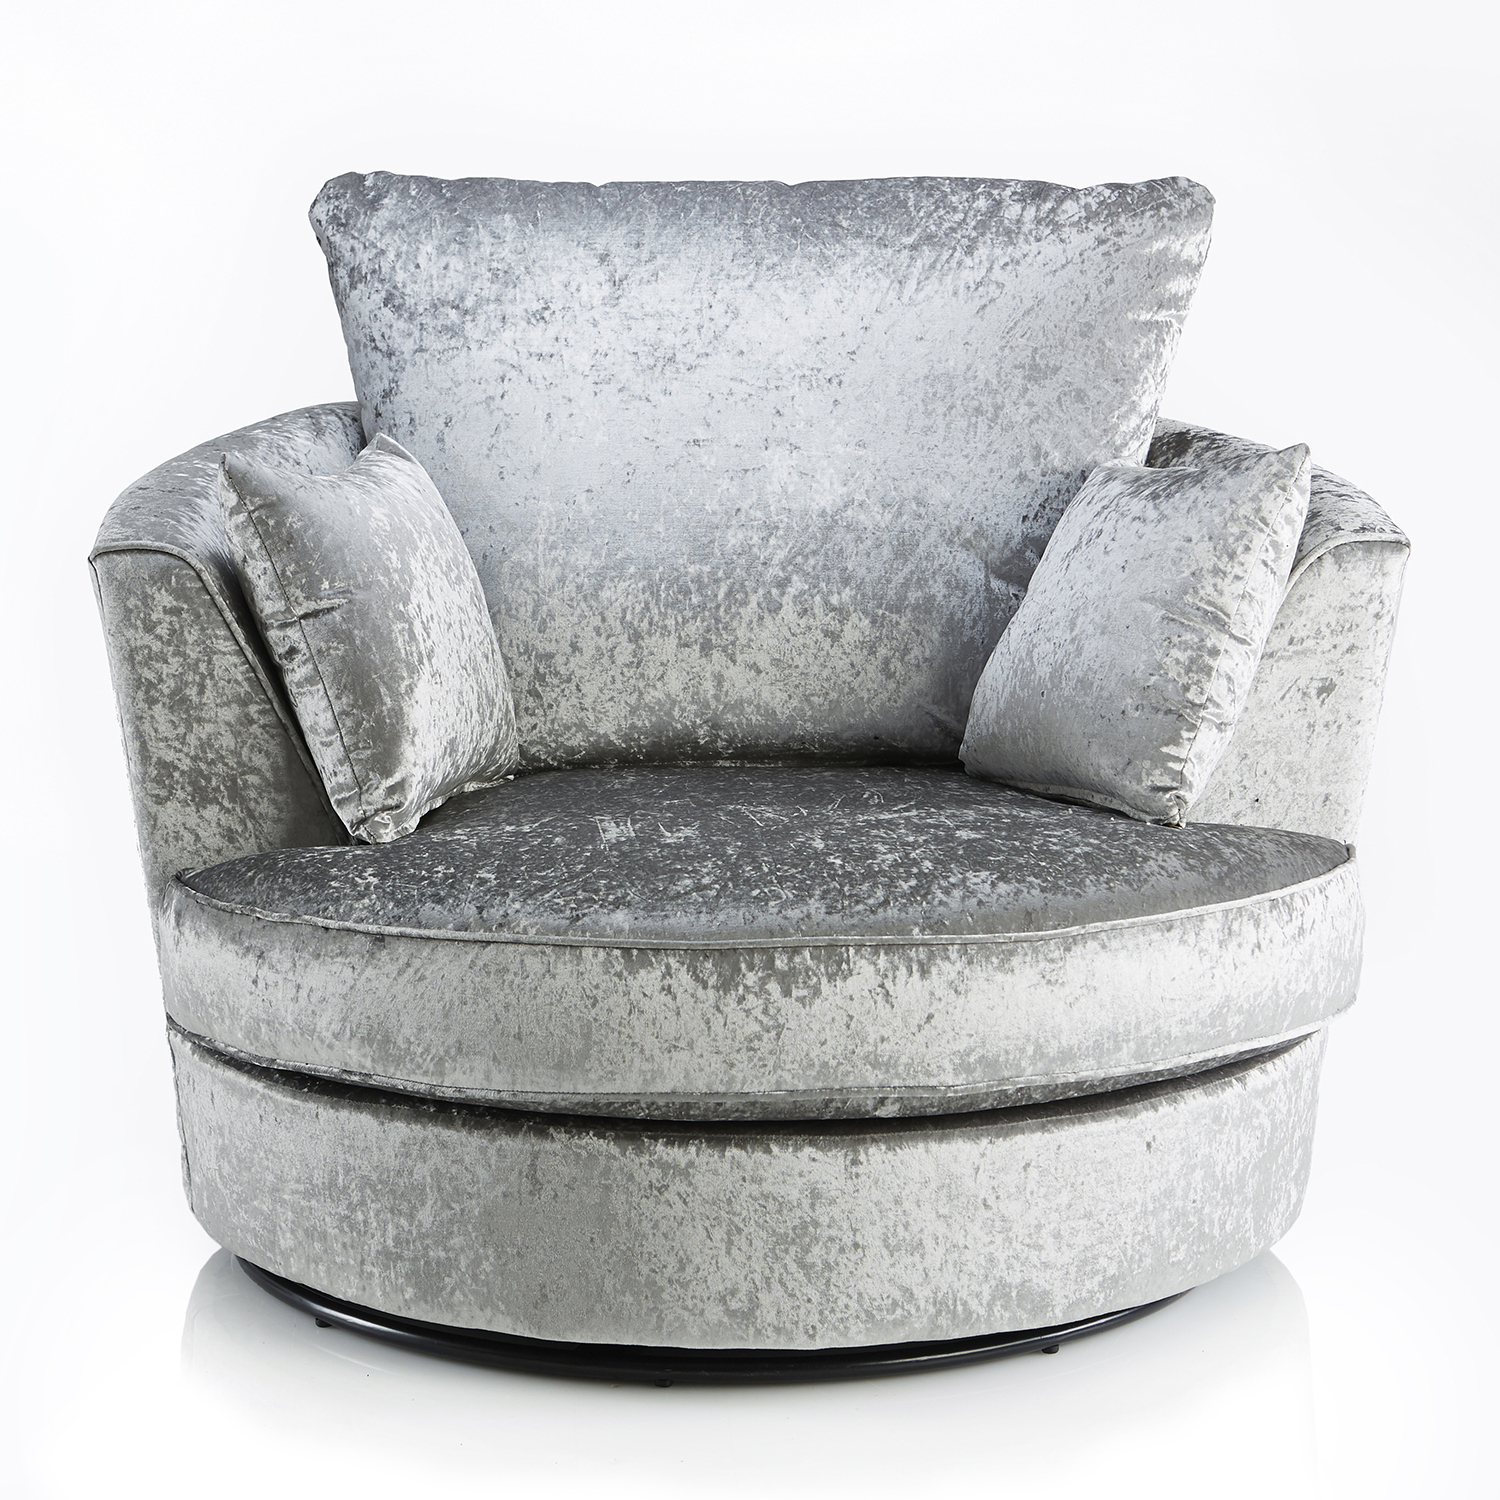 Crushed Velvet Sofa Chair Energywarden Swivel Silver Next Day Throughout Mansfield Graphite Velvet Sofa Chairs (View 14 of 25)